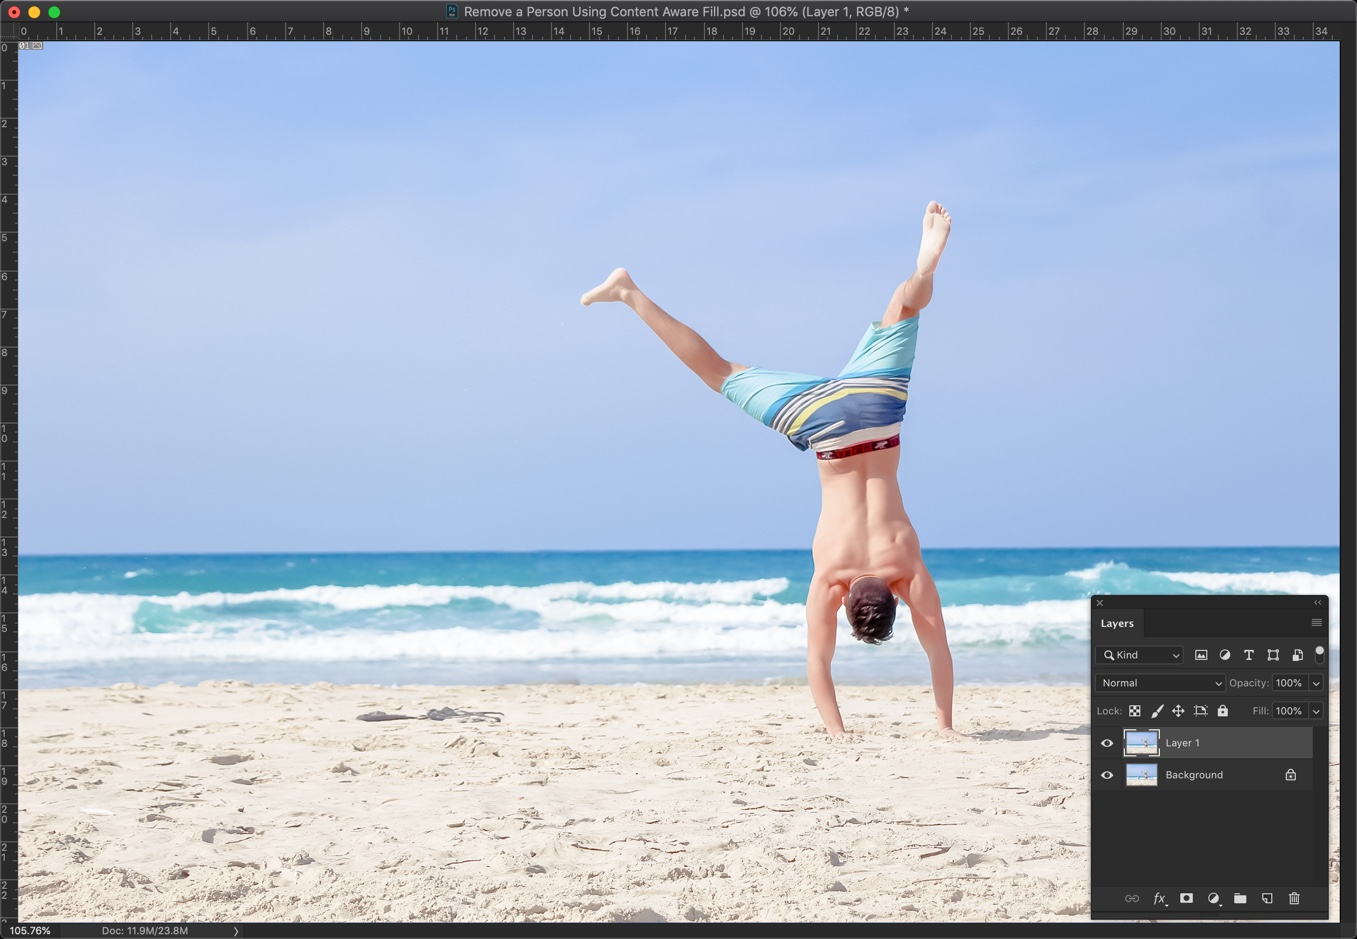 6-1 - [Pro Hack] Use Content Aware Fill to Remove a Person in Photoshop